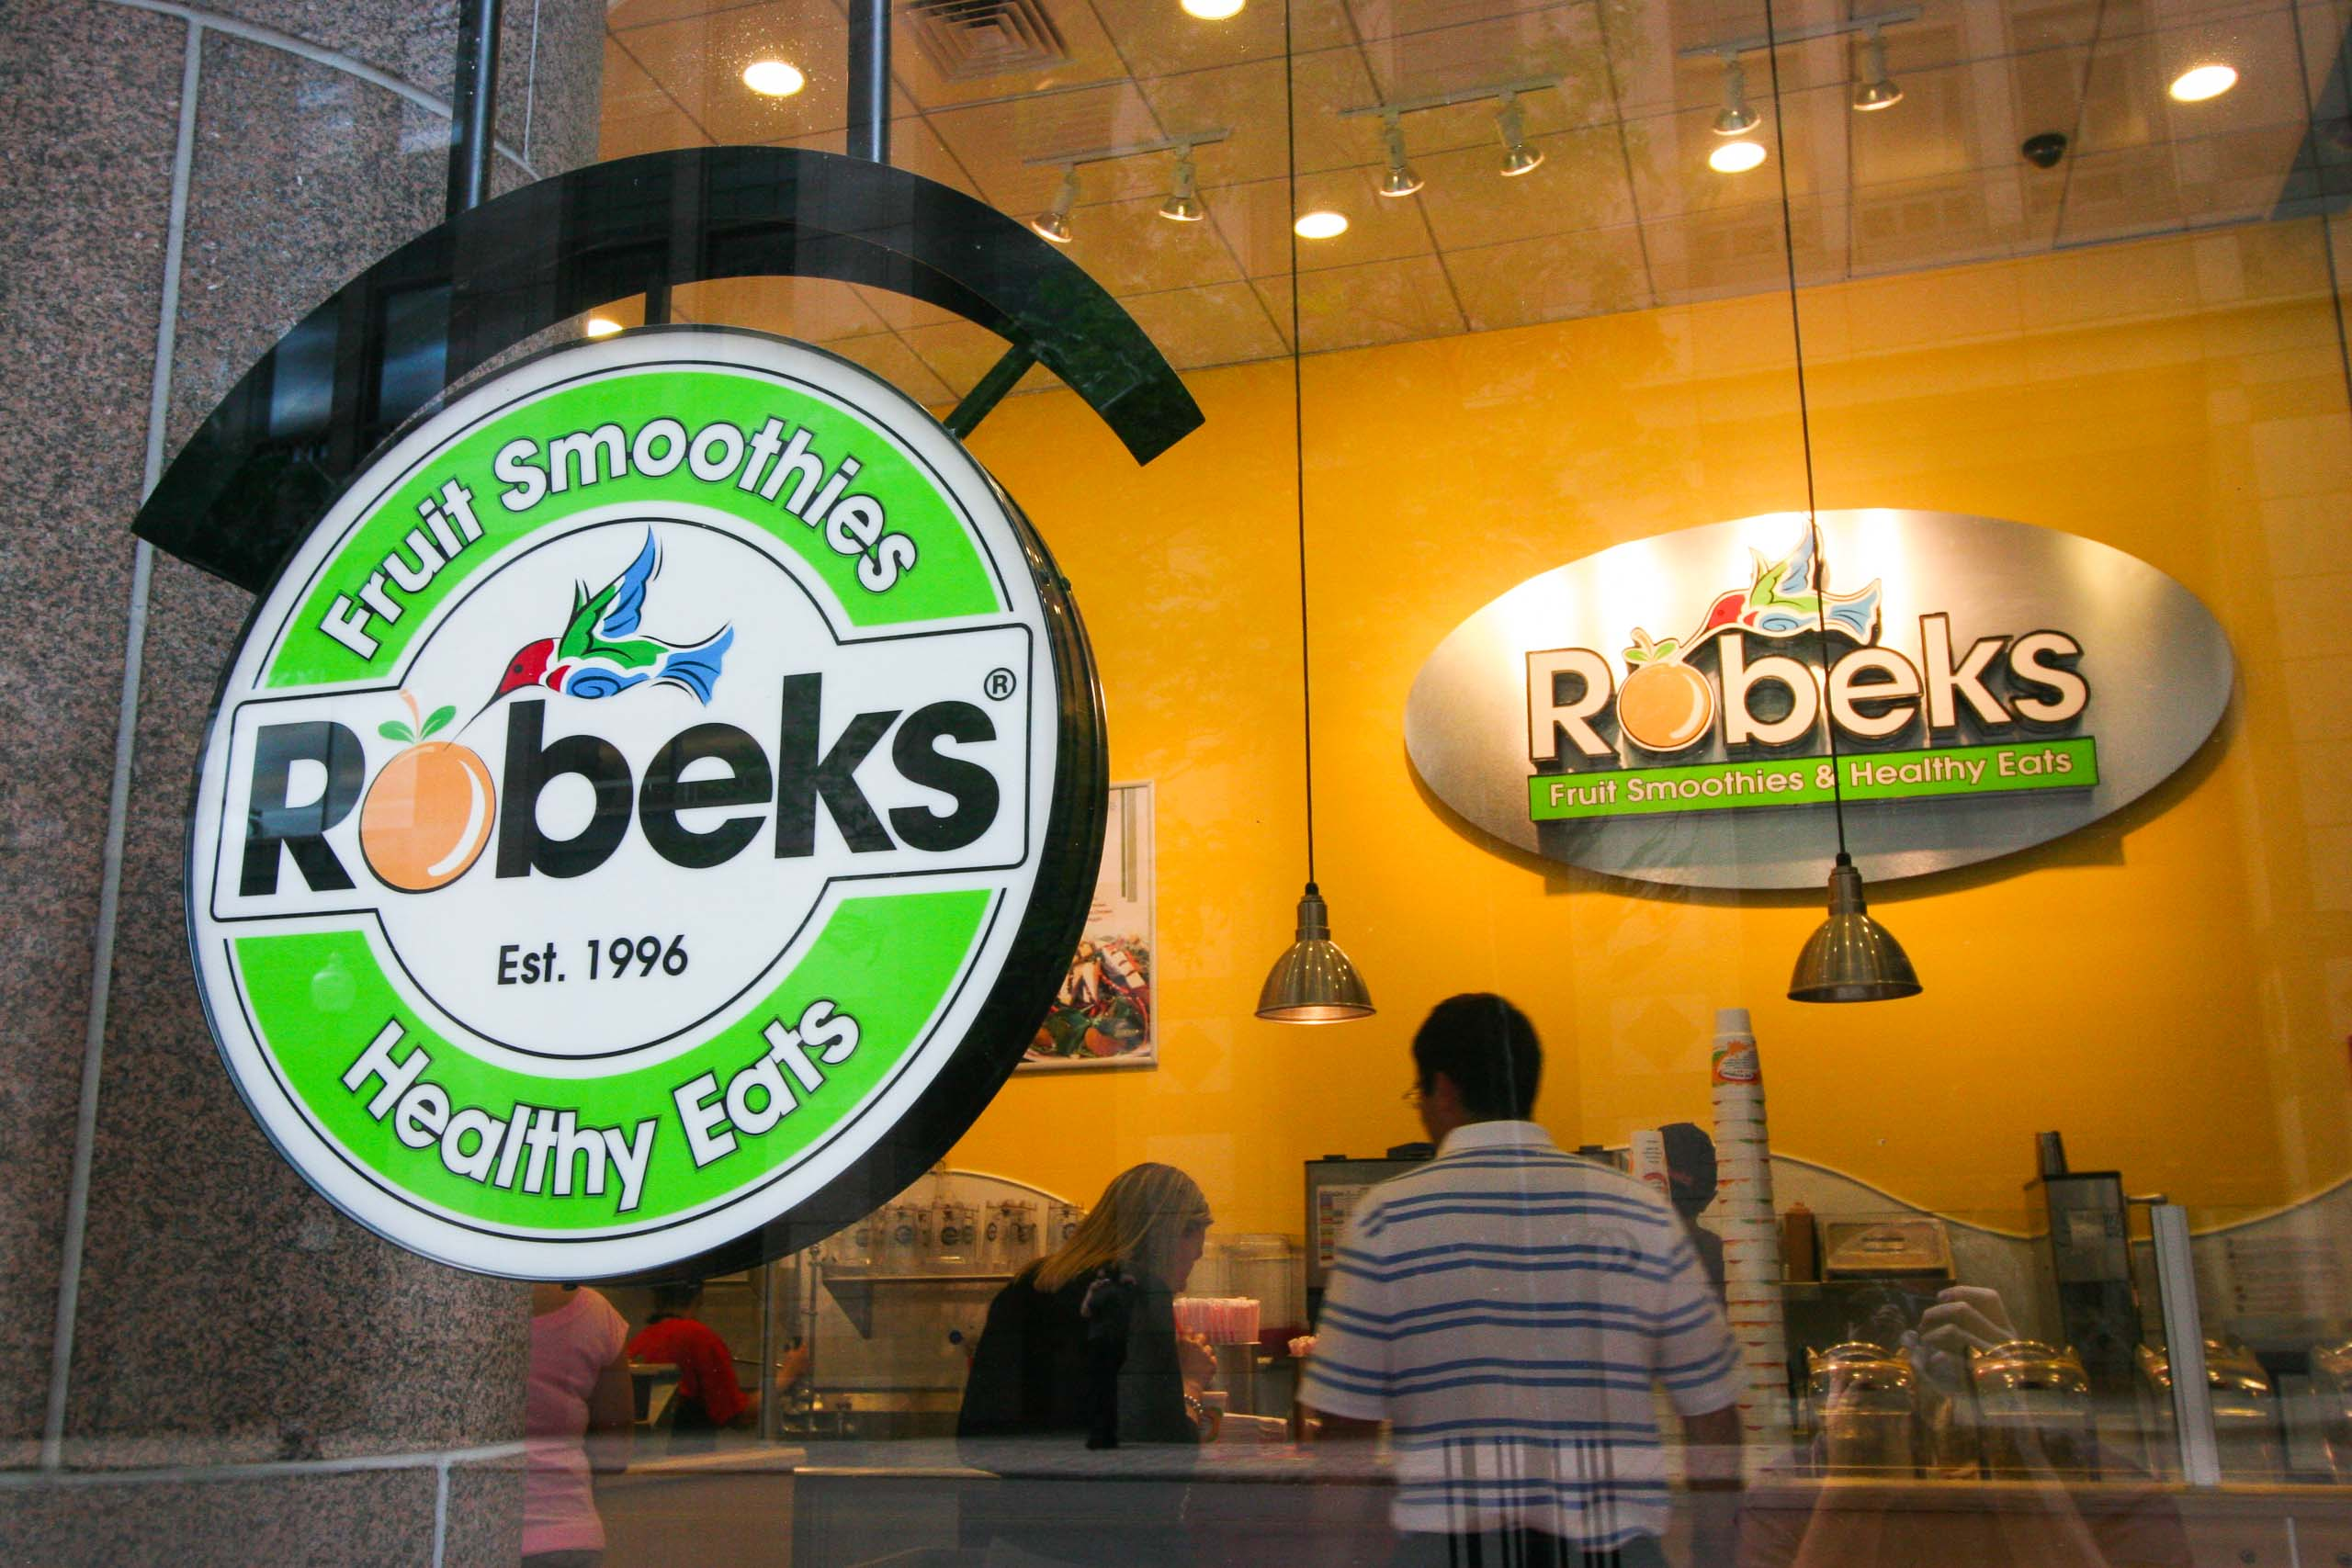 Robeks Fruit Smoothies